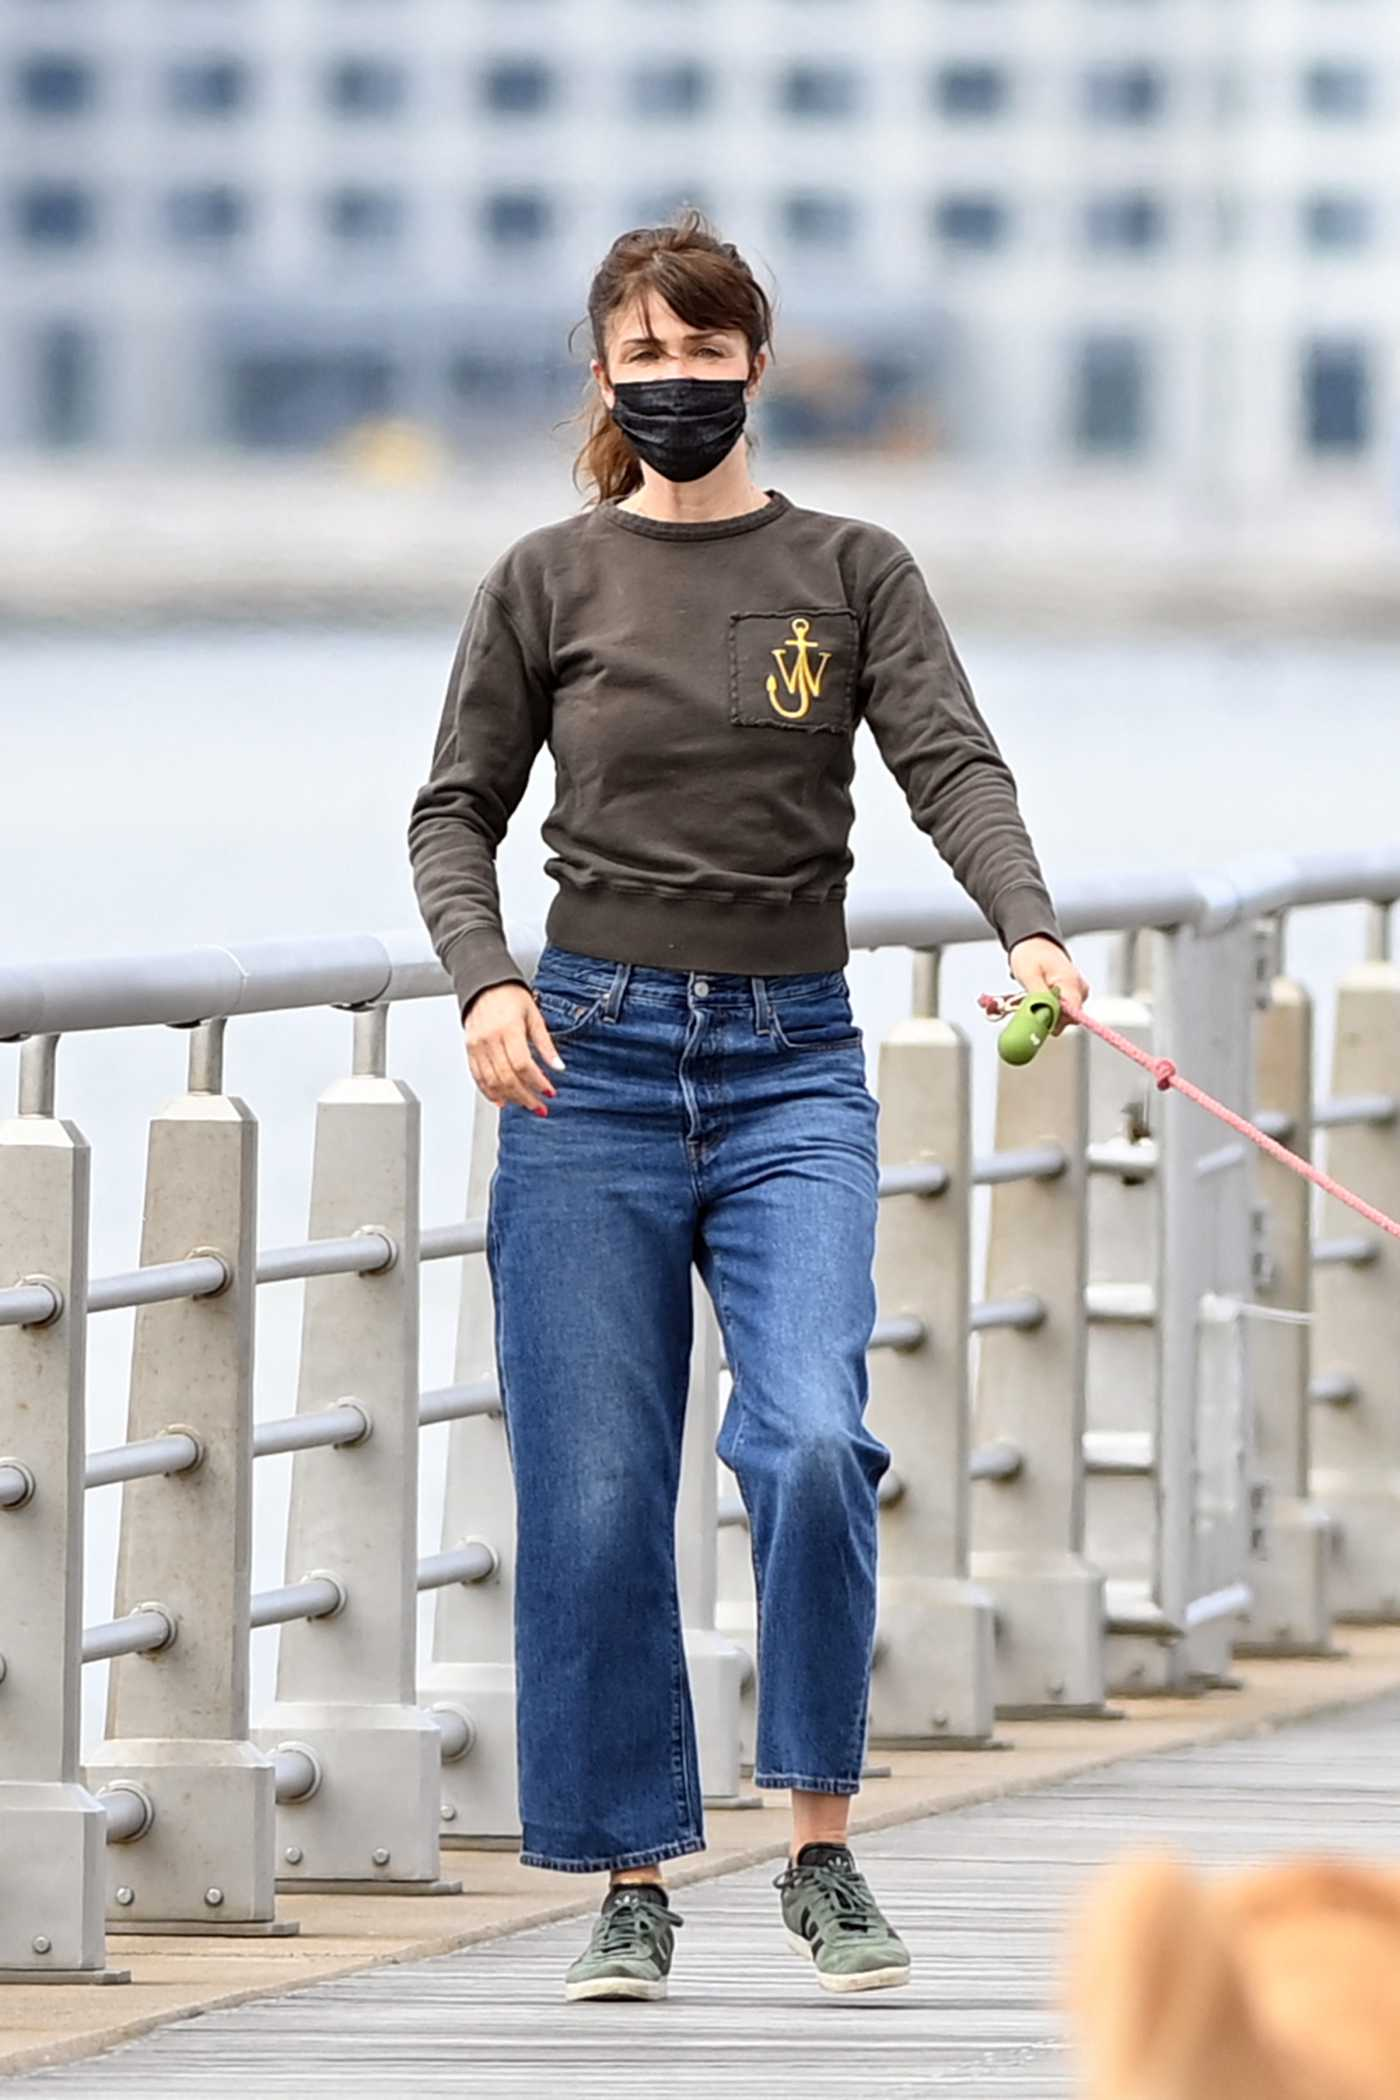 Helena Christensen in a Black Protective Mask Walks Her Dog in New York 04/18/2021